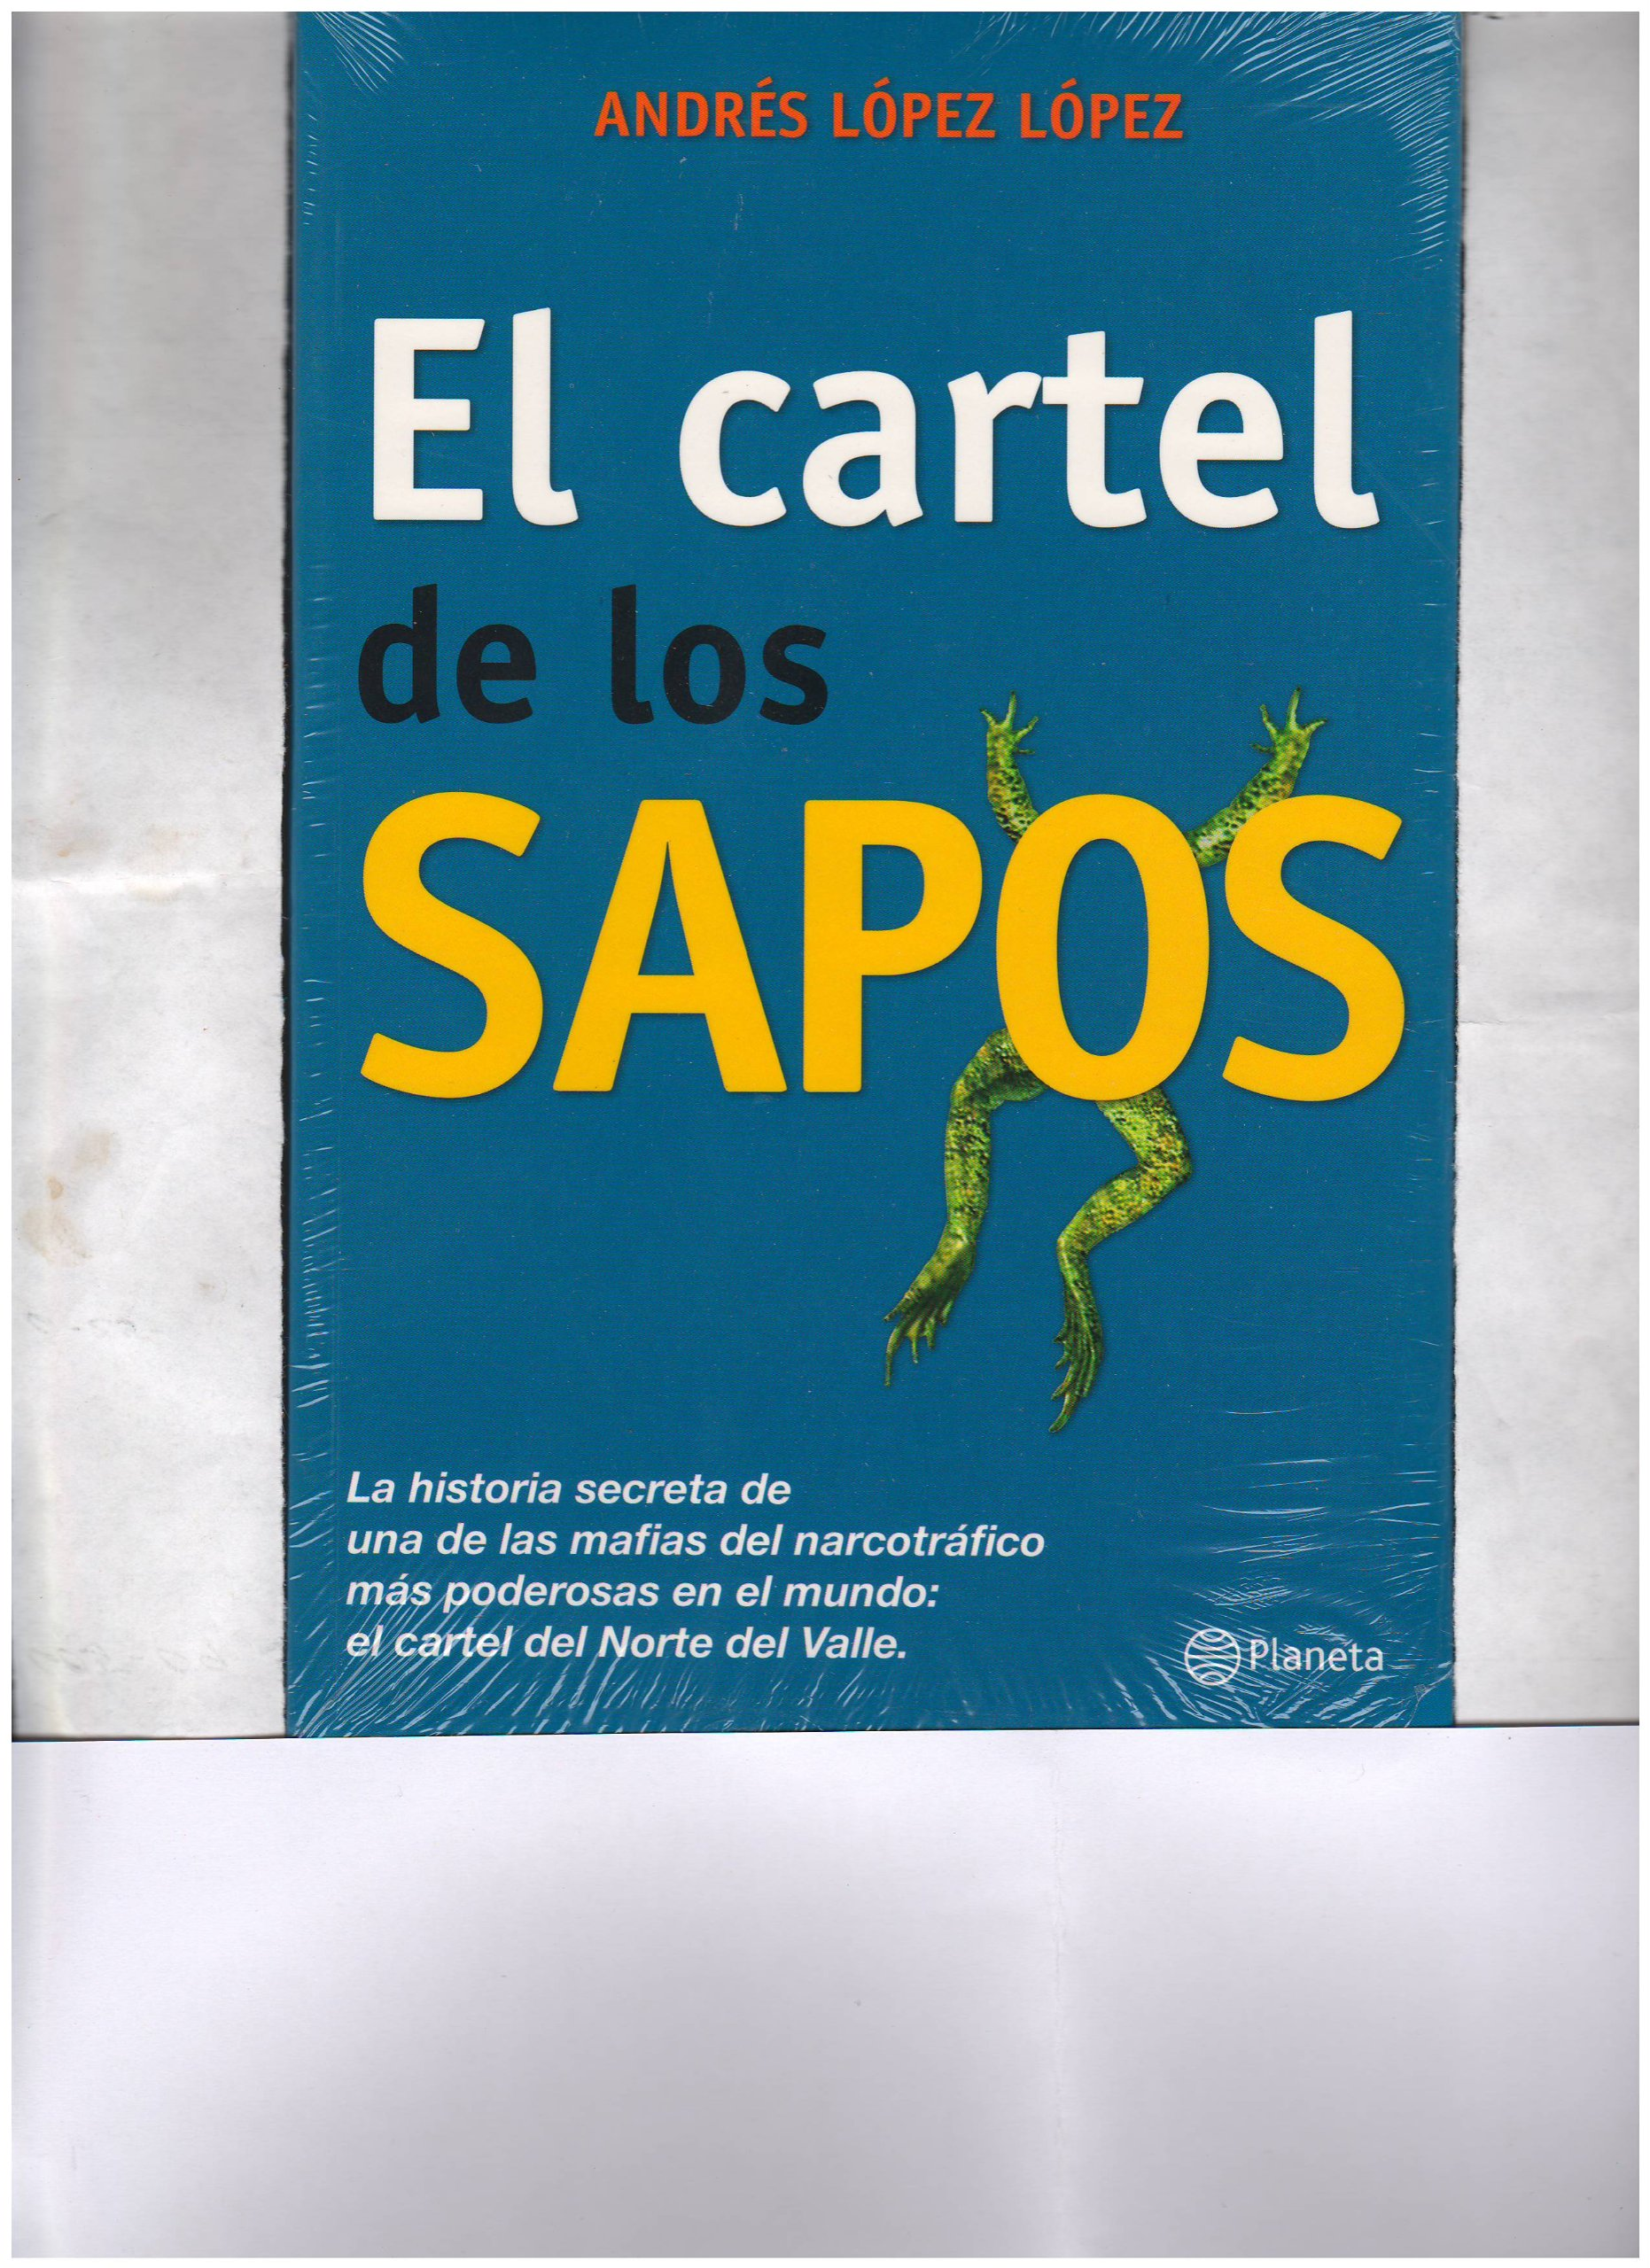 EL CARTEL DE LOS SAPOS: Amazon.com: Books